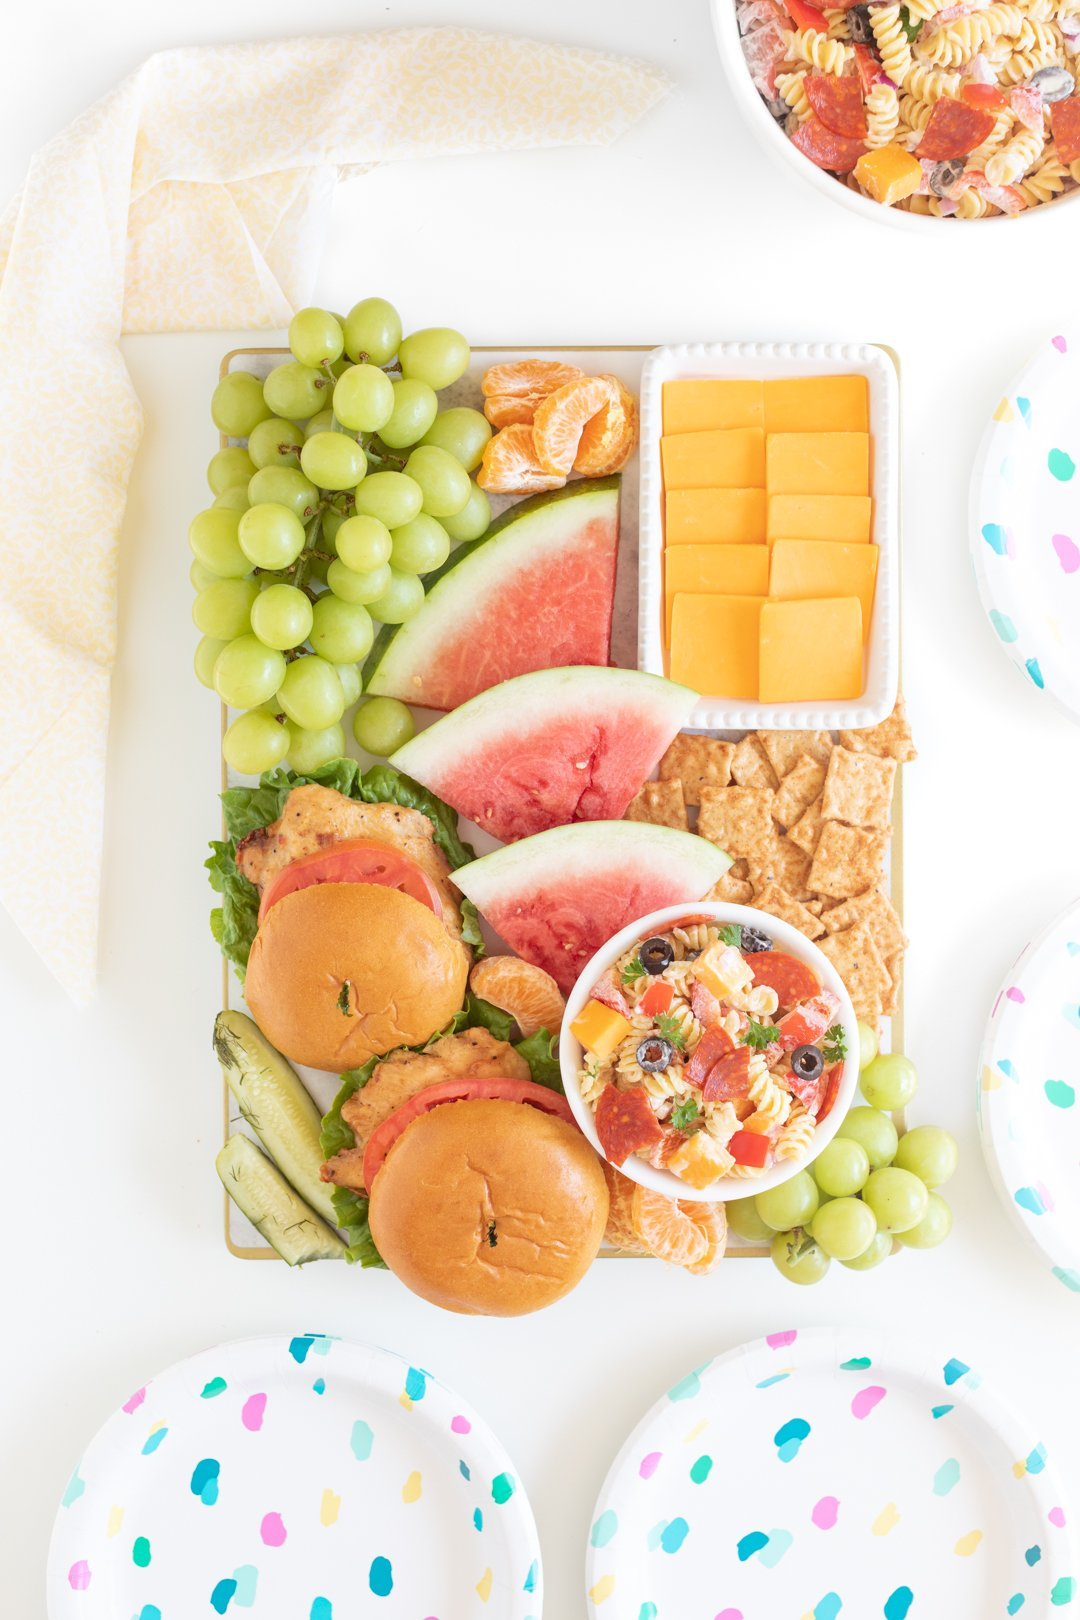 bbqterie board with grilled chicken sandwiches on buns, sliced watermelon, fruits, pasta salad, cheese and crackers